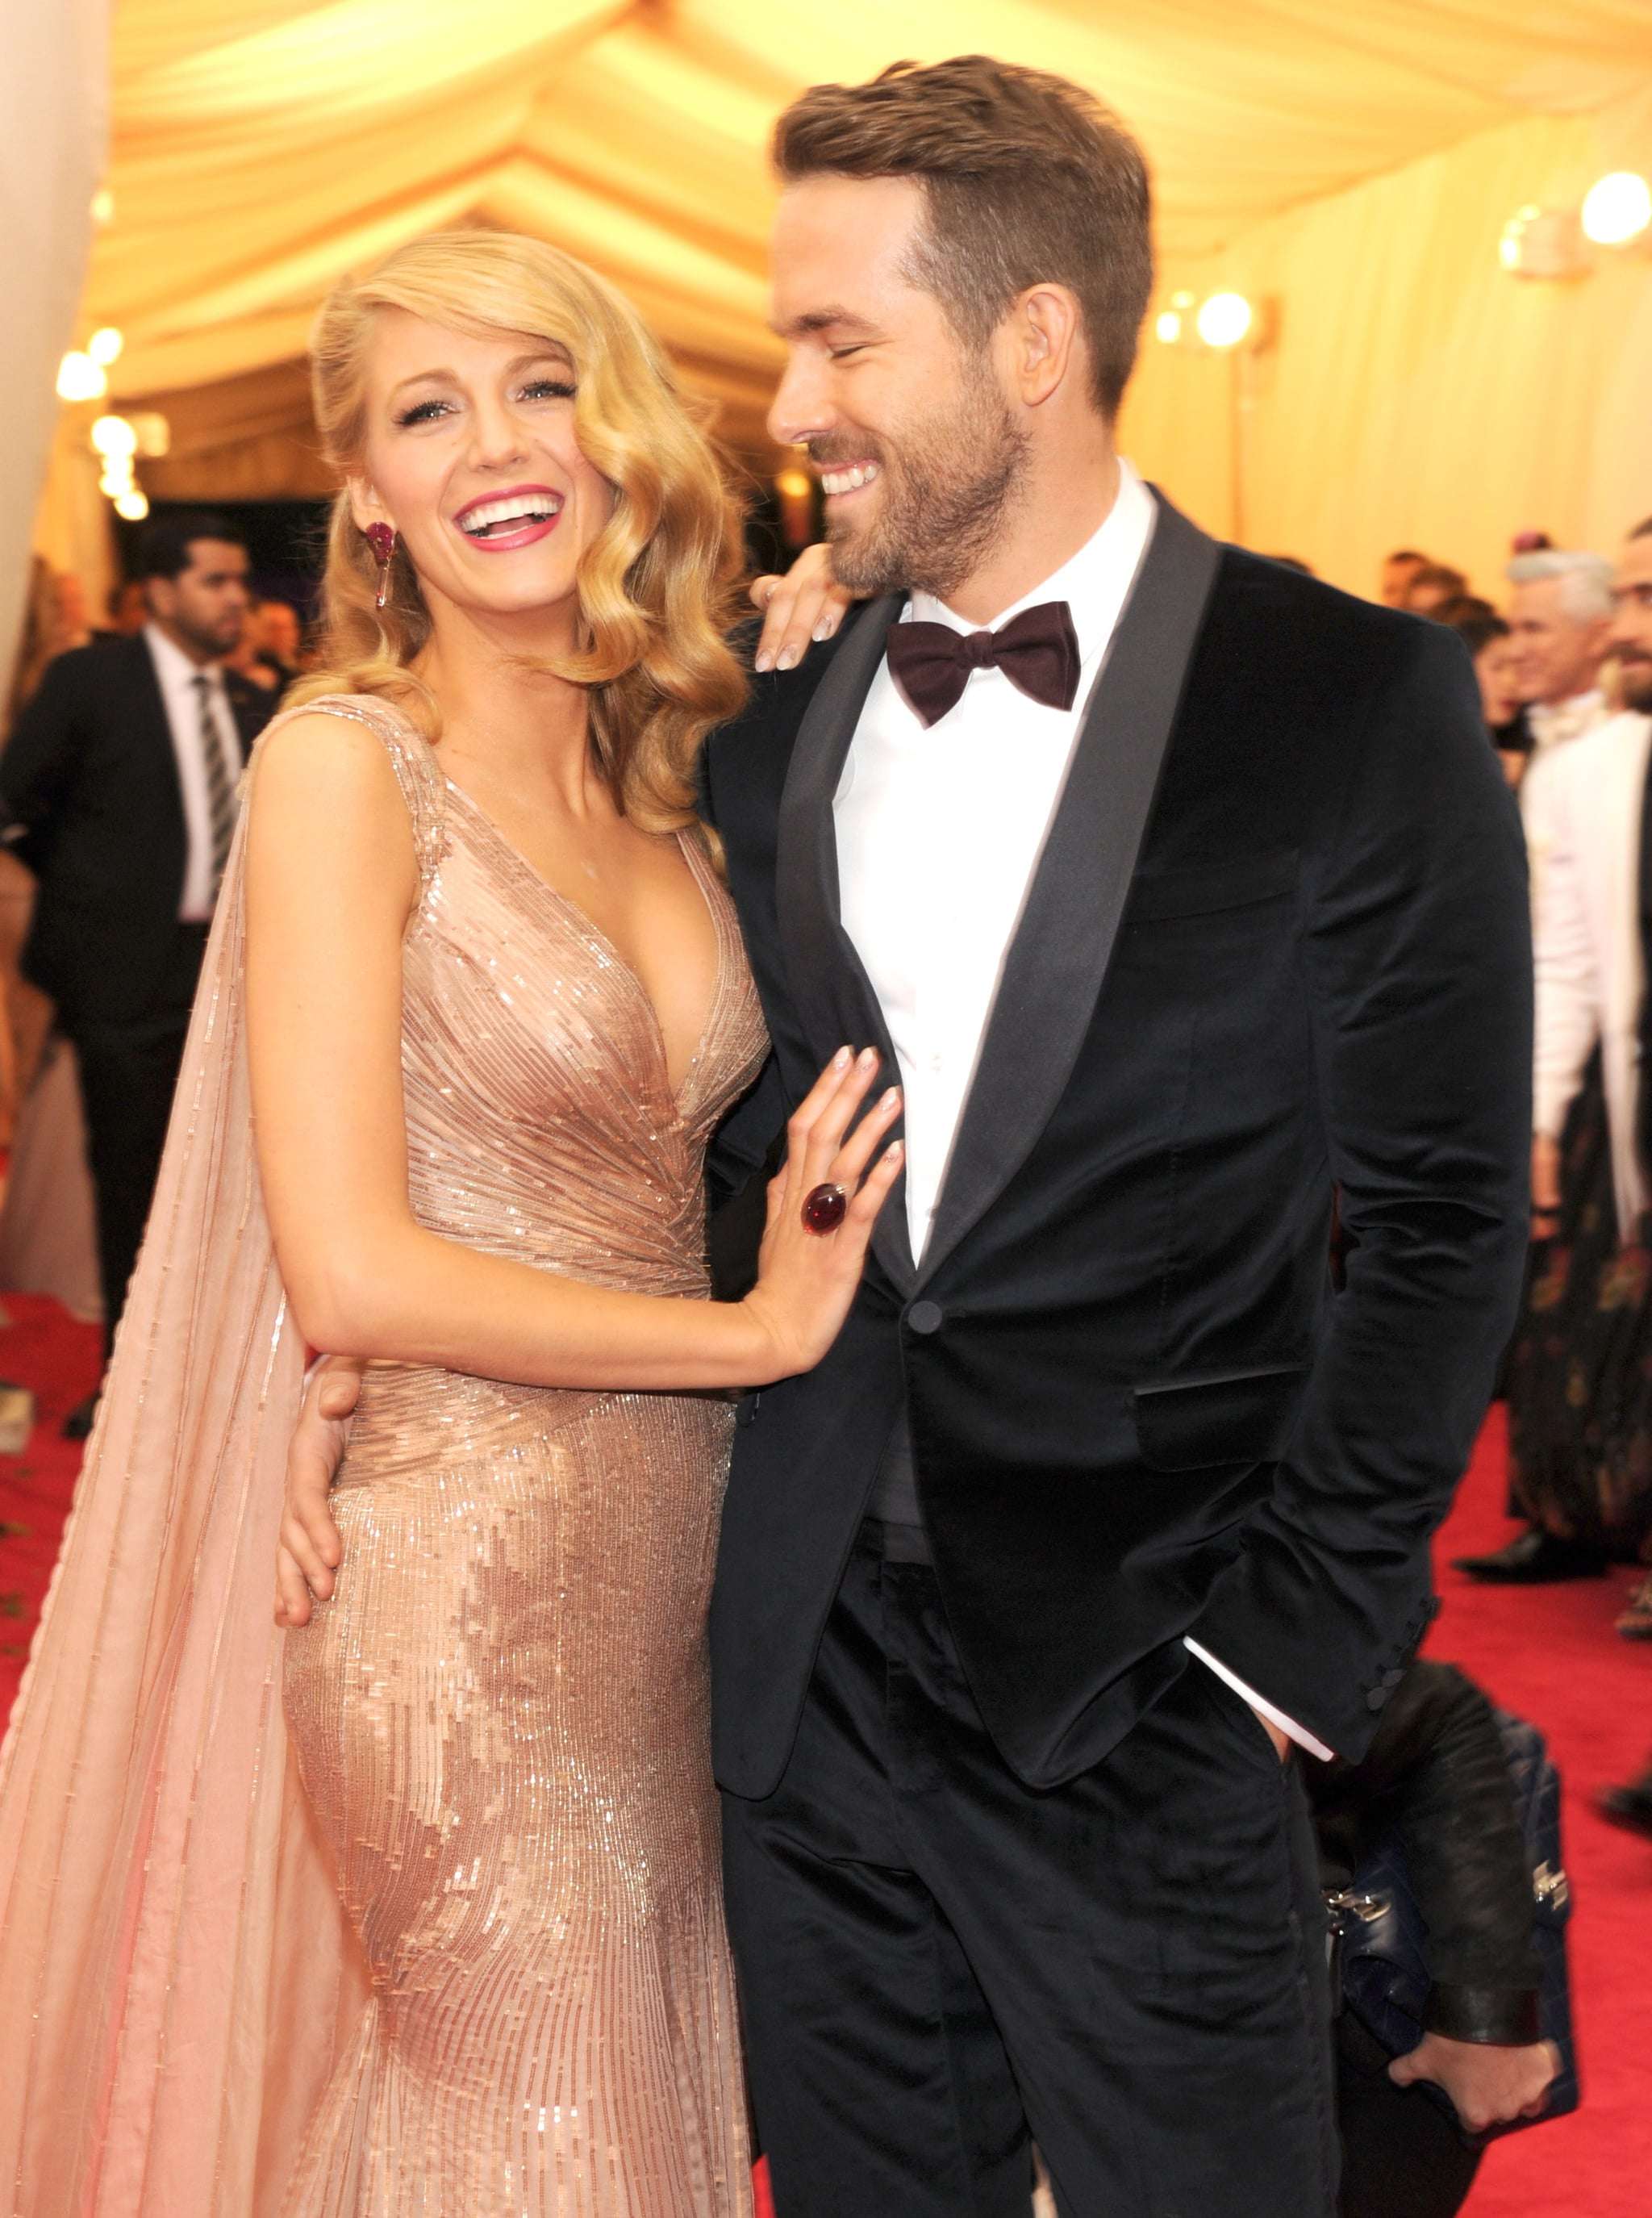 Blake Lively and Ryan Reynolds Win Cutest Couple at the Met Gala